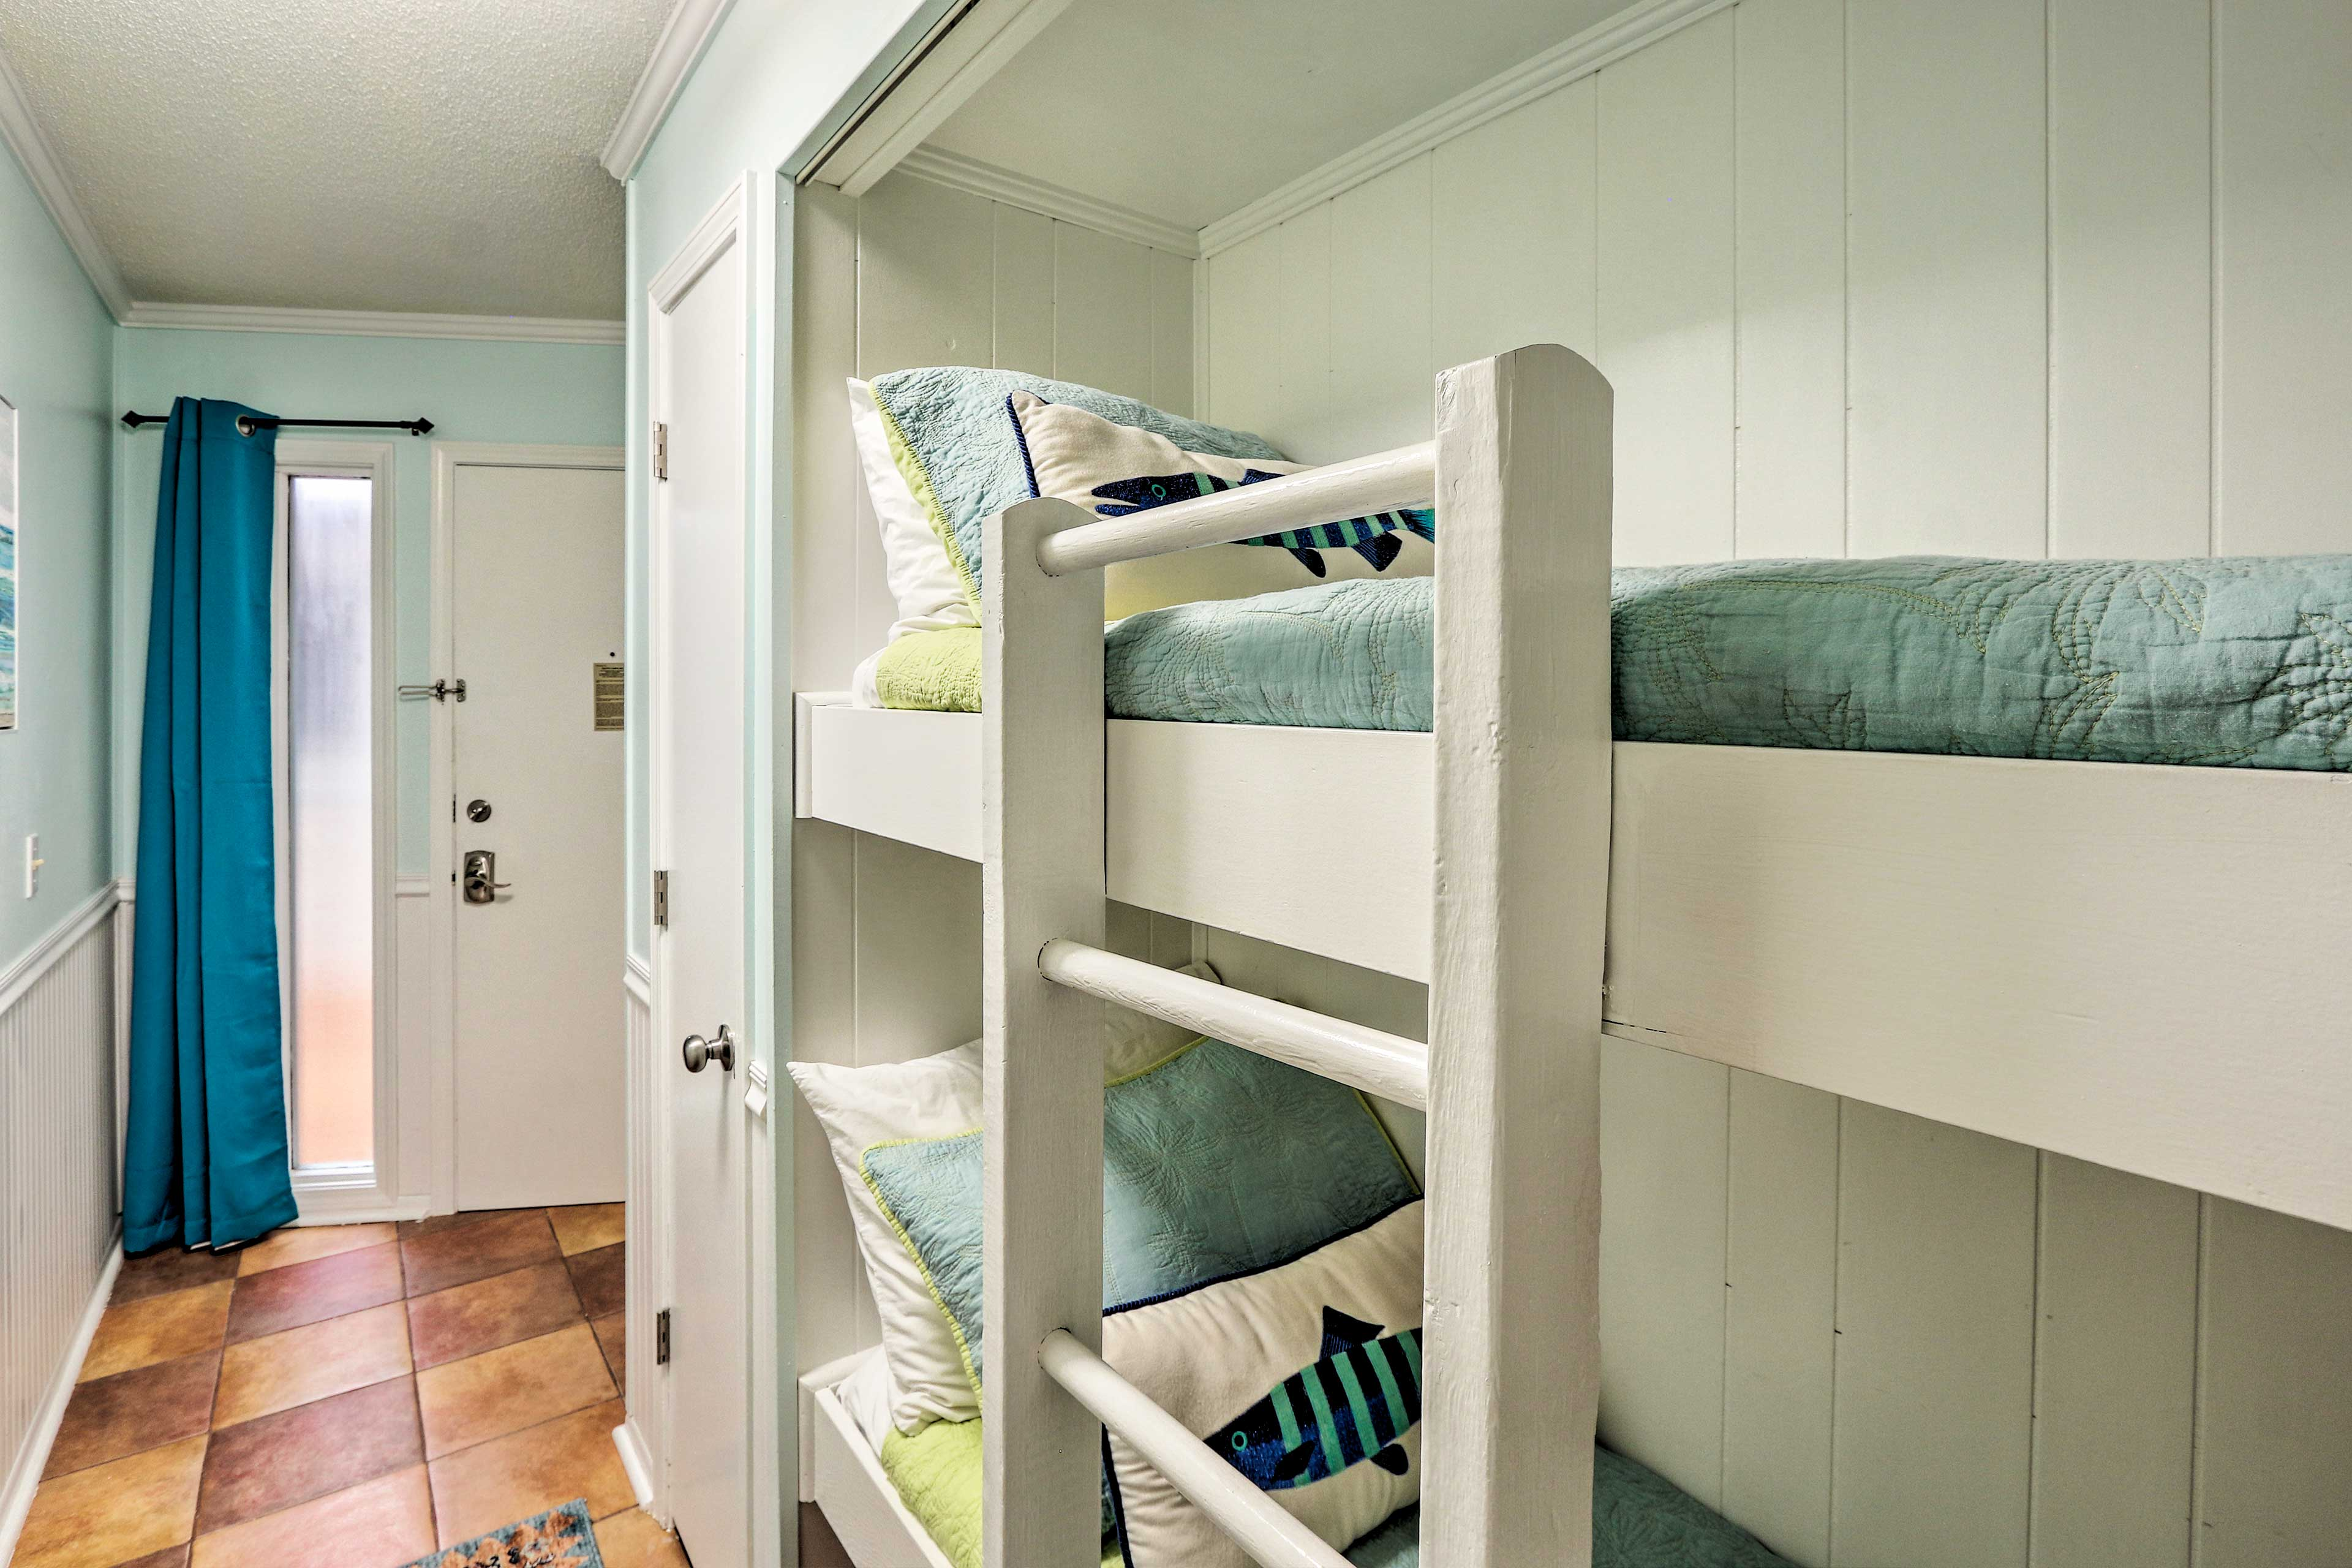 The hallway hideaway twin-over-twin bunk bed is perfect for the kids.